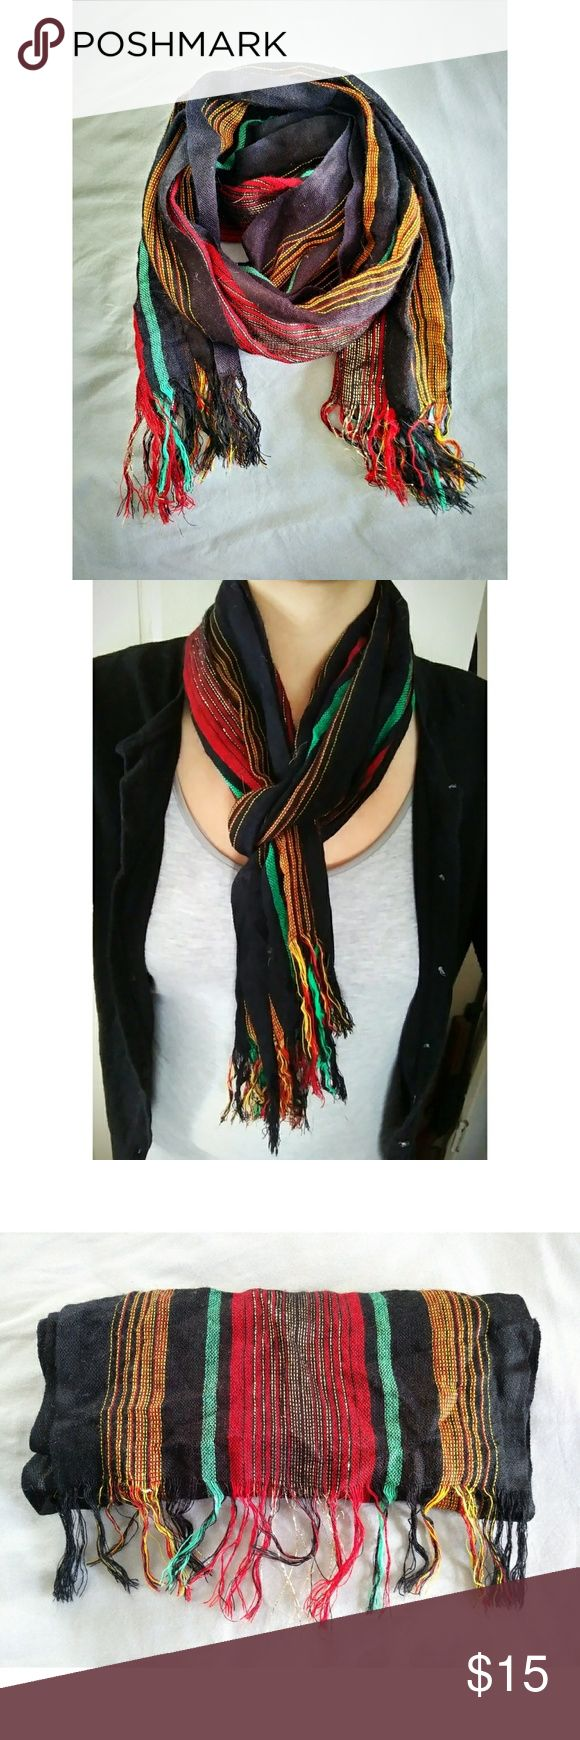 "✨ Rasta Theme Colored Light Scarf - Material: Unknown; But very light - Brand: Unknown; listed this way for visibility - Measurements (scarf folded in two; laying flat): 32"" [ w/out fringe ] - No trades - Please don't hesitate to ask any questions! - Price is reasonably negotiable! Urban Outfitters Accessories Scarves & Wraps"